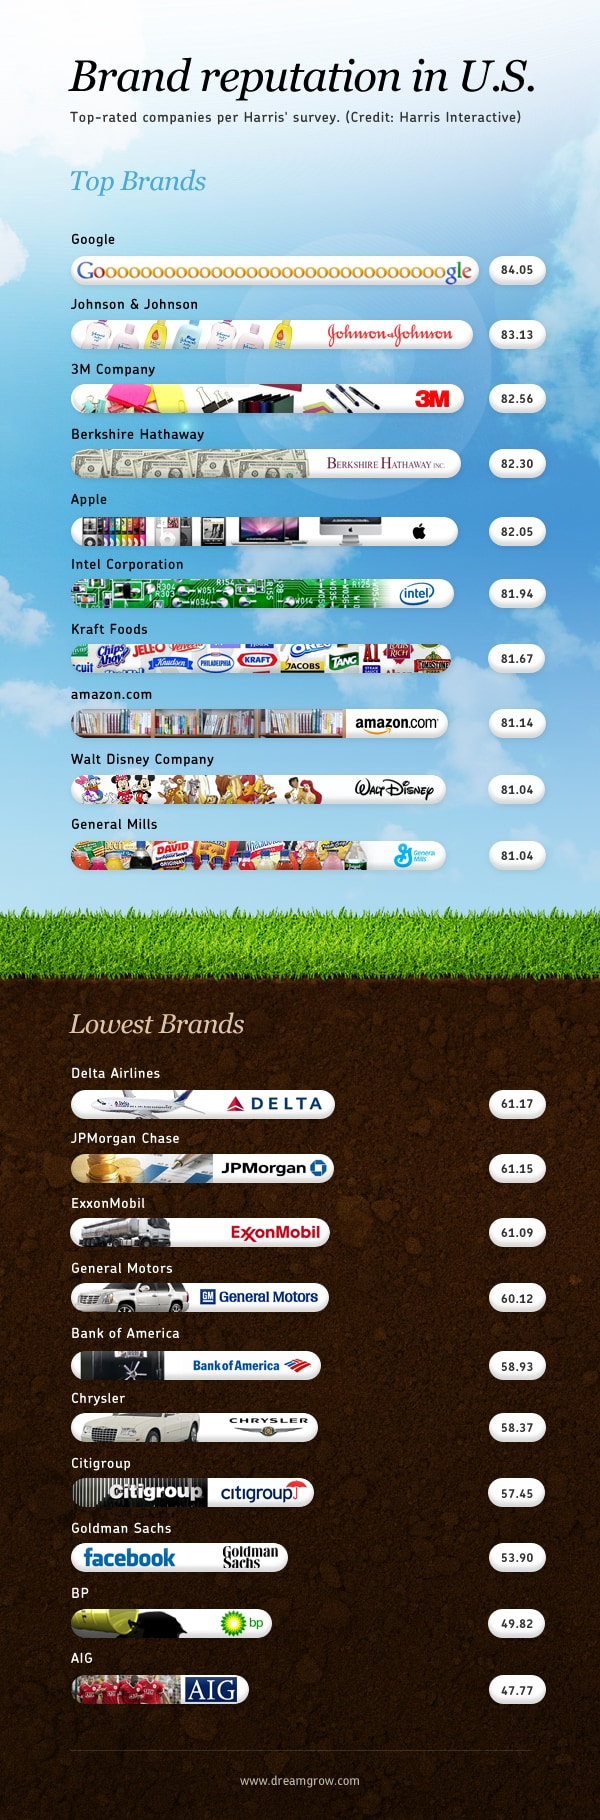 Global top brands 2011 RQ